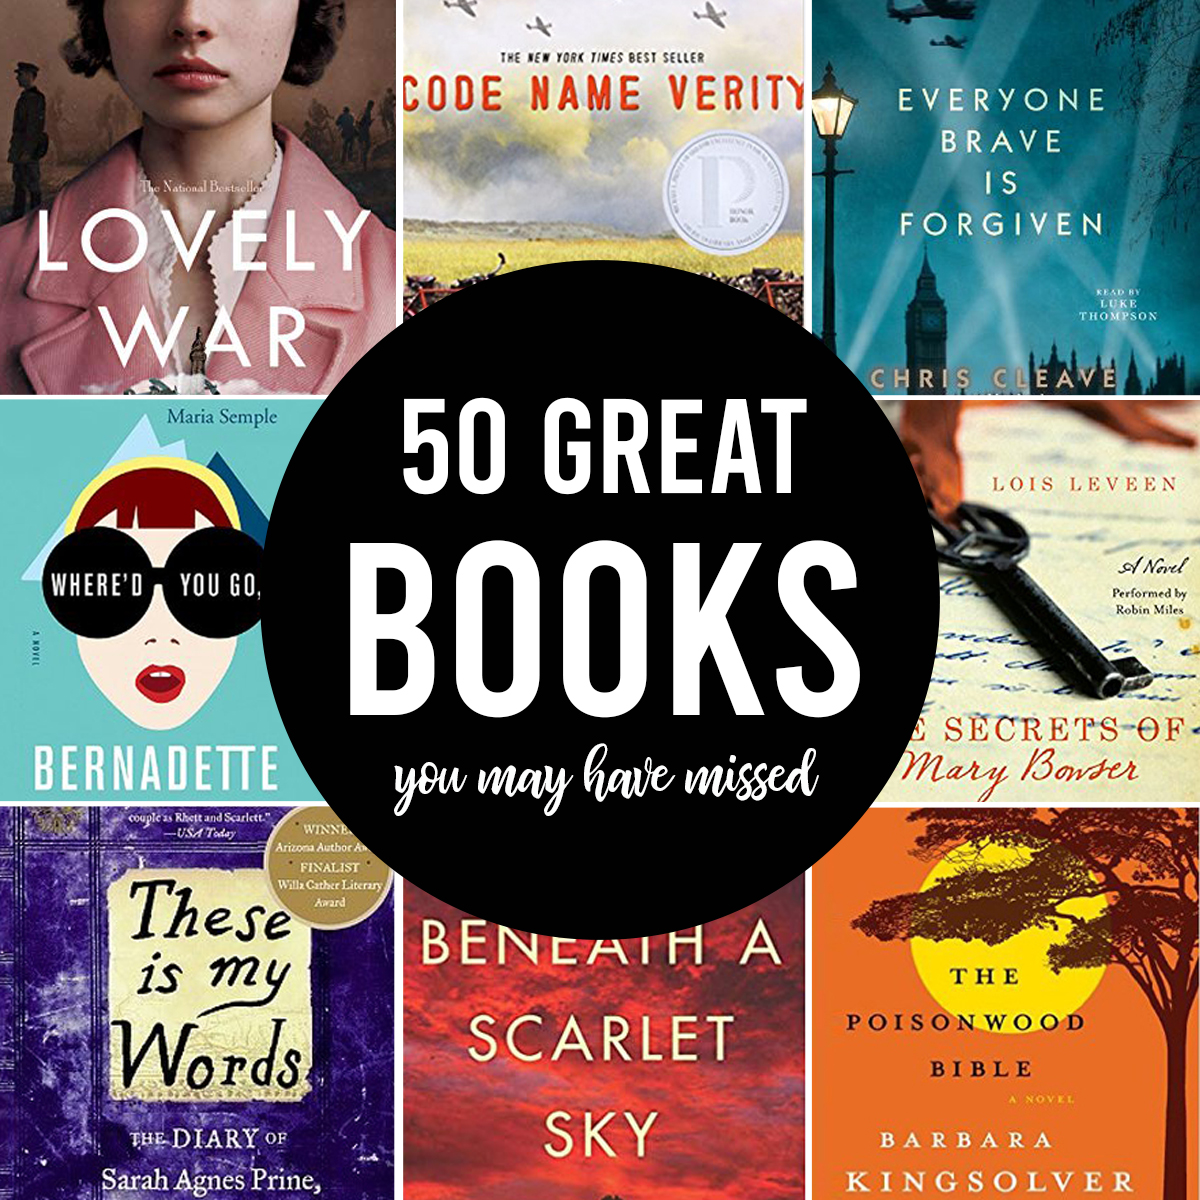 Collage photo of book covers with words: 50 great books you may have missed